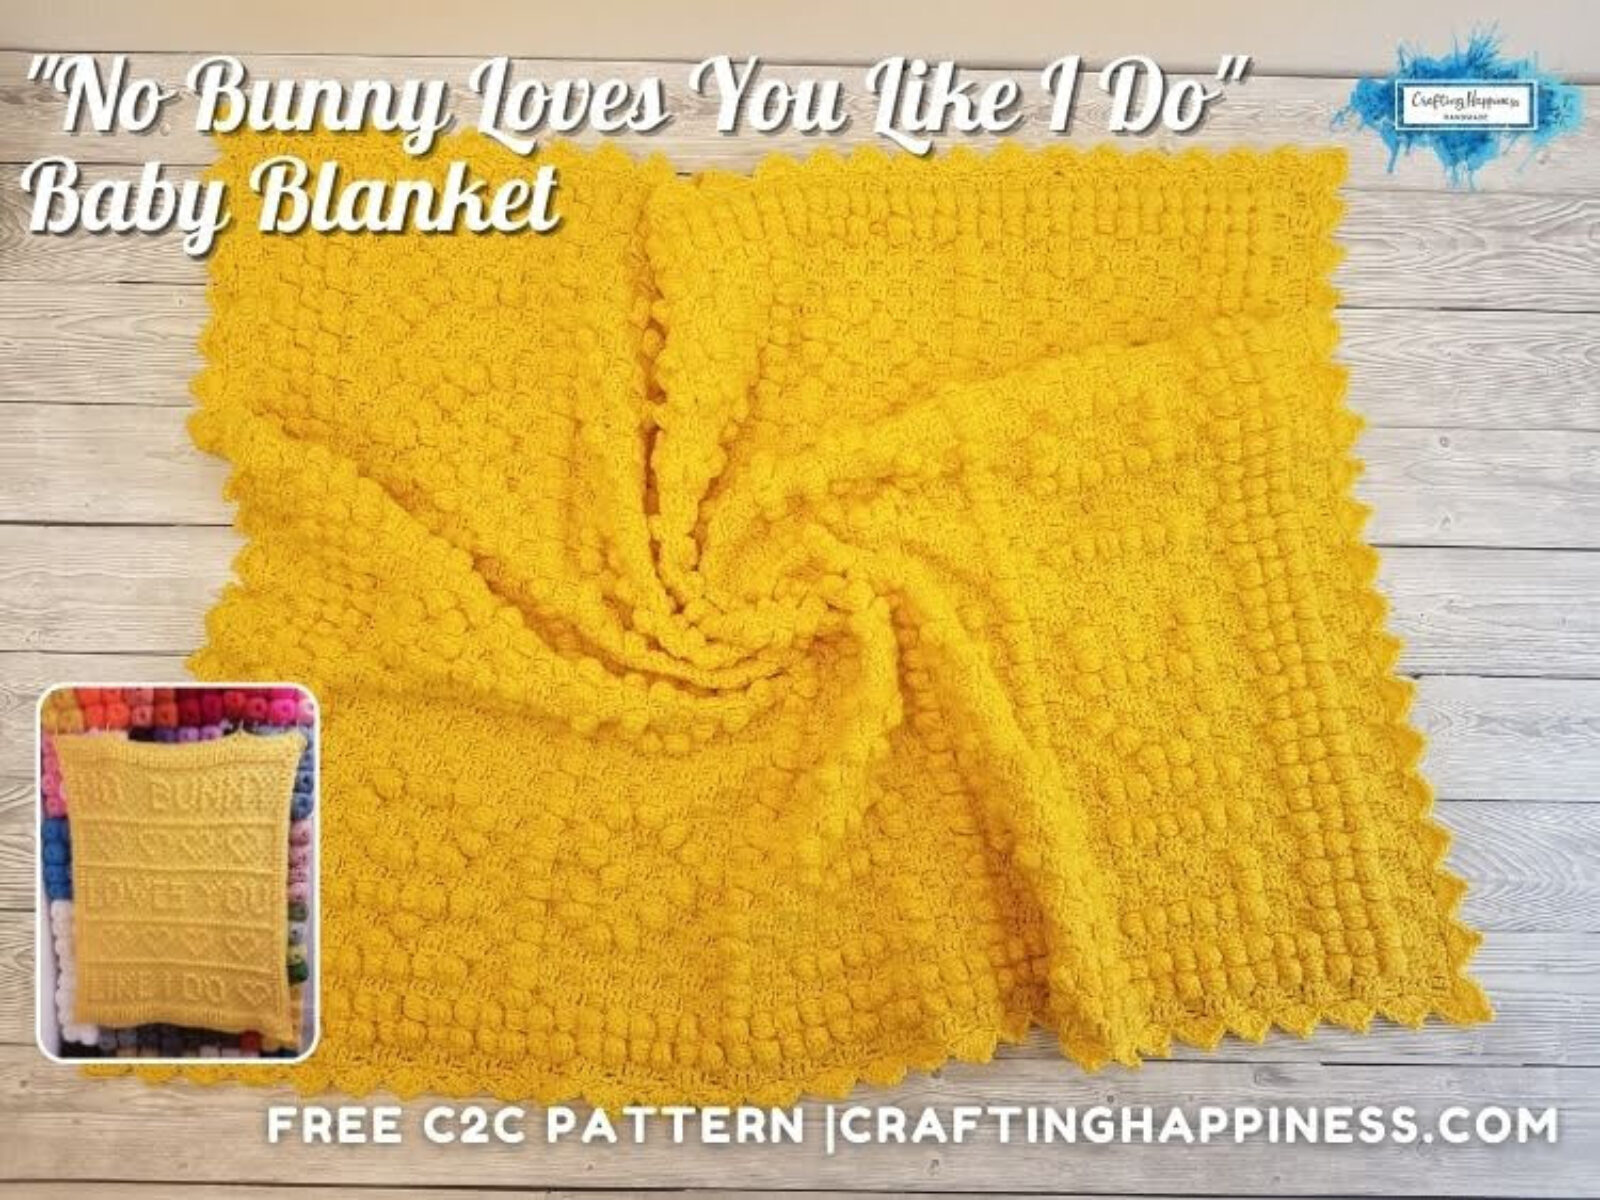 FB BLOG POSTER - No Bunny Loves You Like I Do Baby Blanket